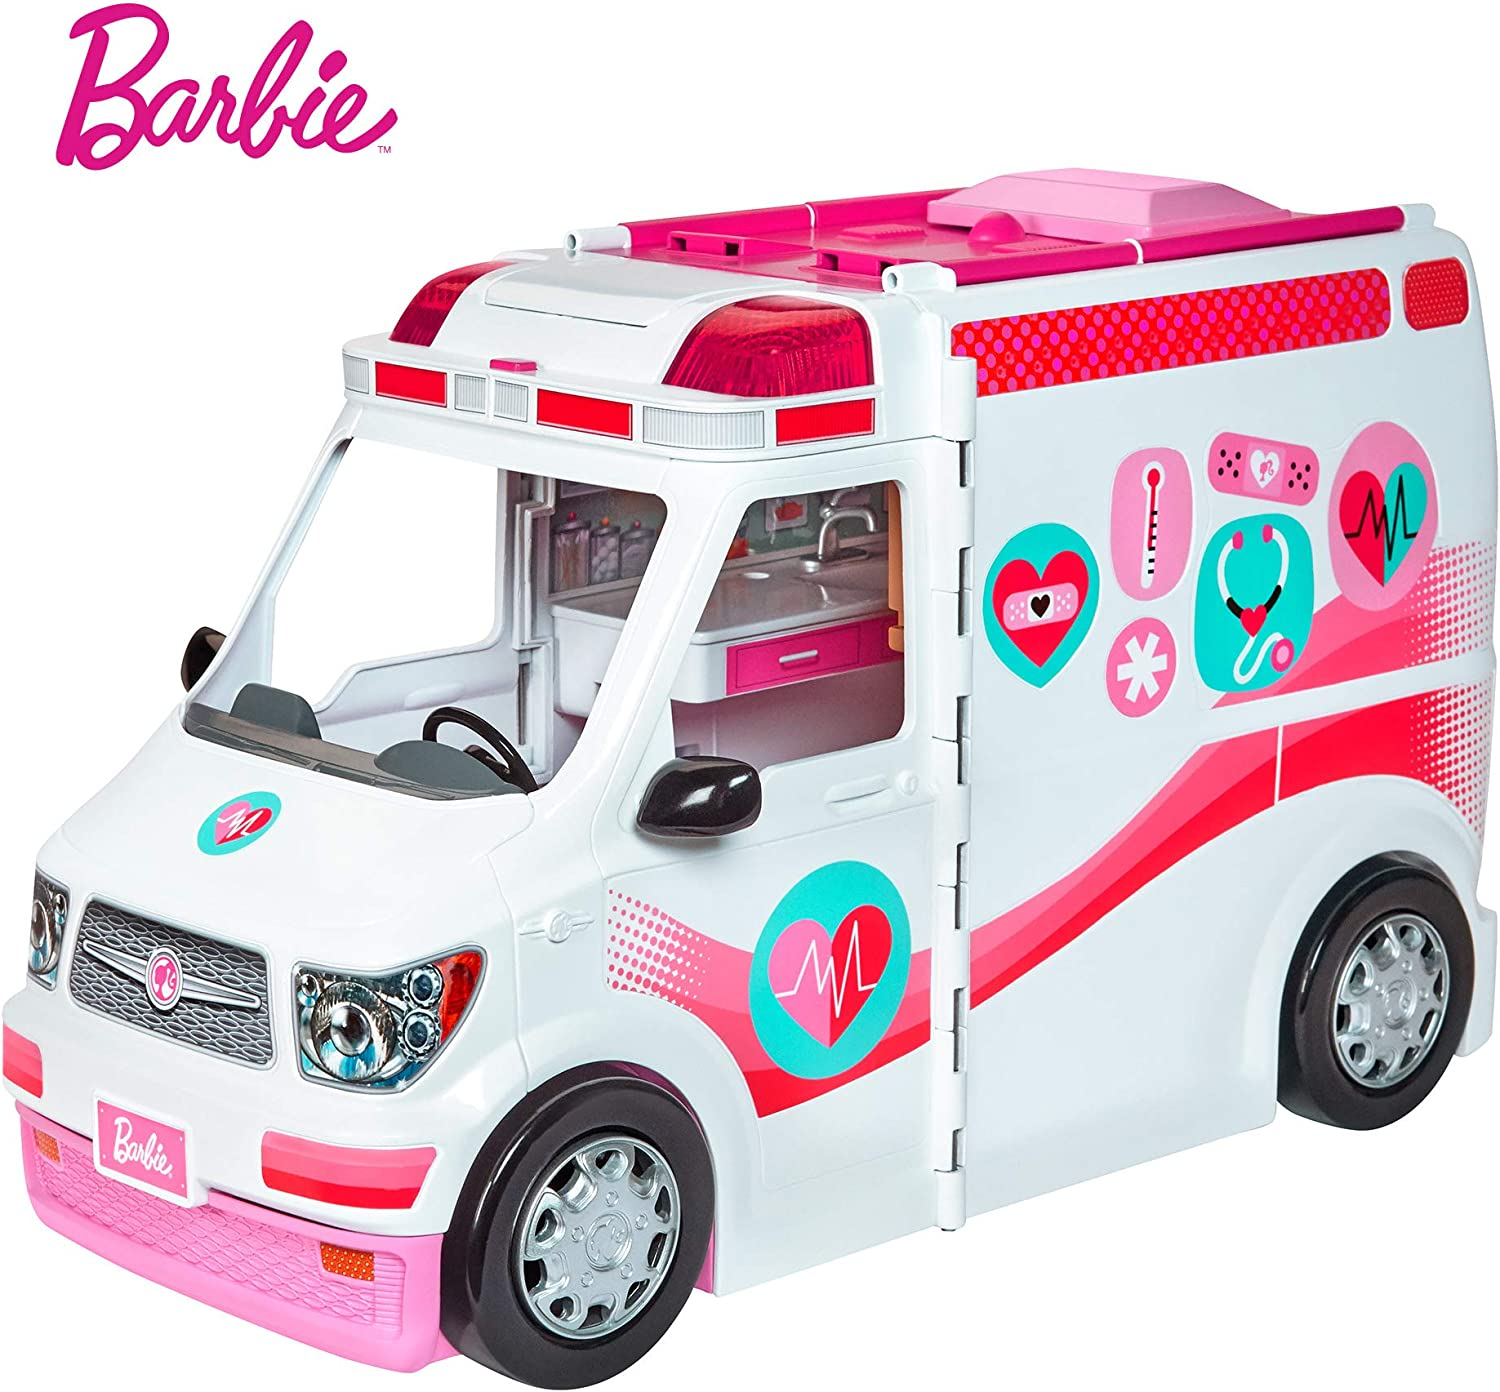 Barbie FRM19 CAREERS Care Clinic Ambulance, Play, Role Model, Lights and Sounds, Lots of Accessories Vehicle, MultiColour, 0